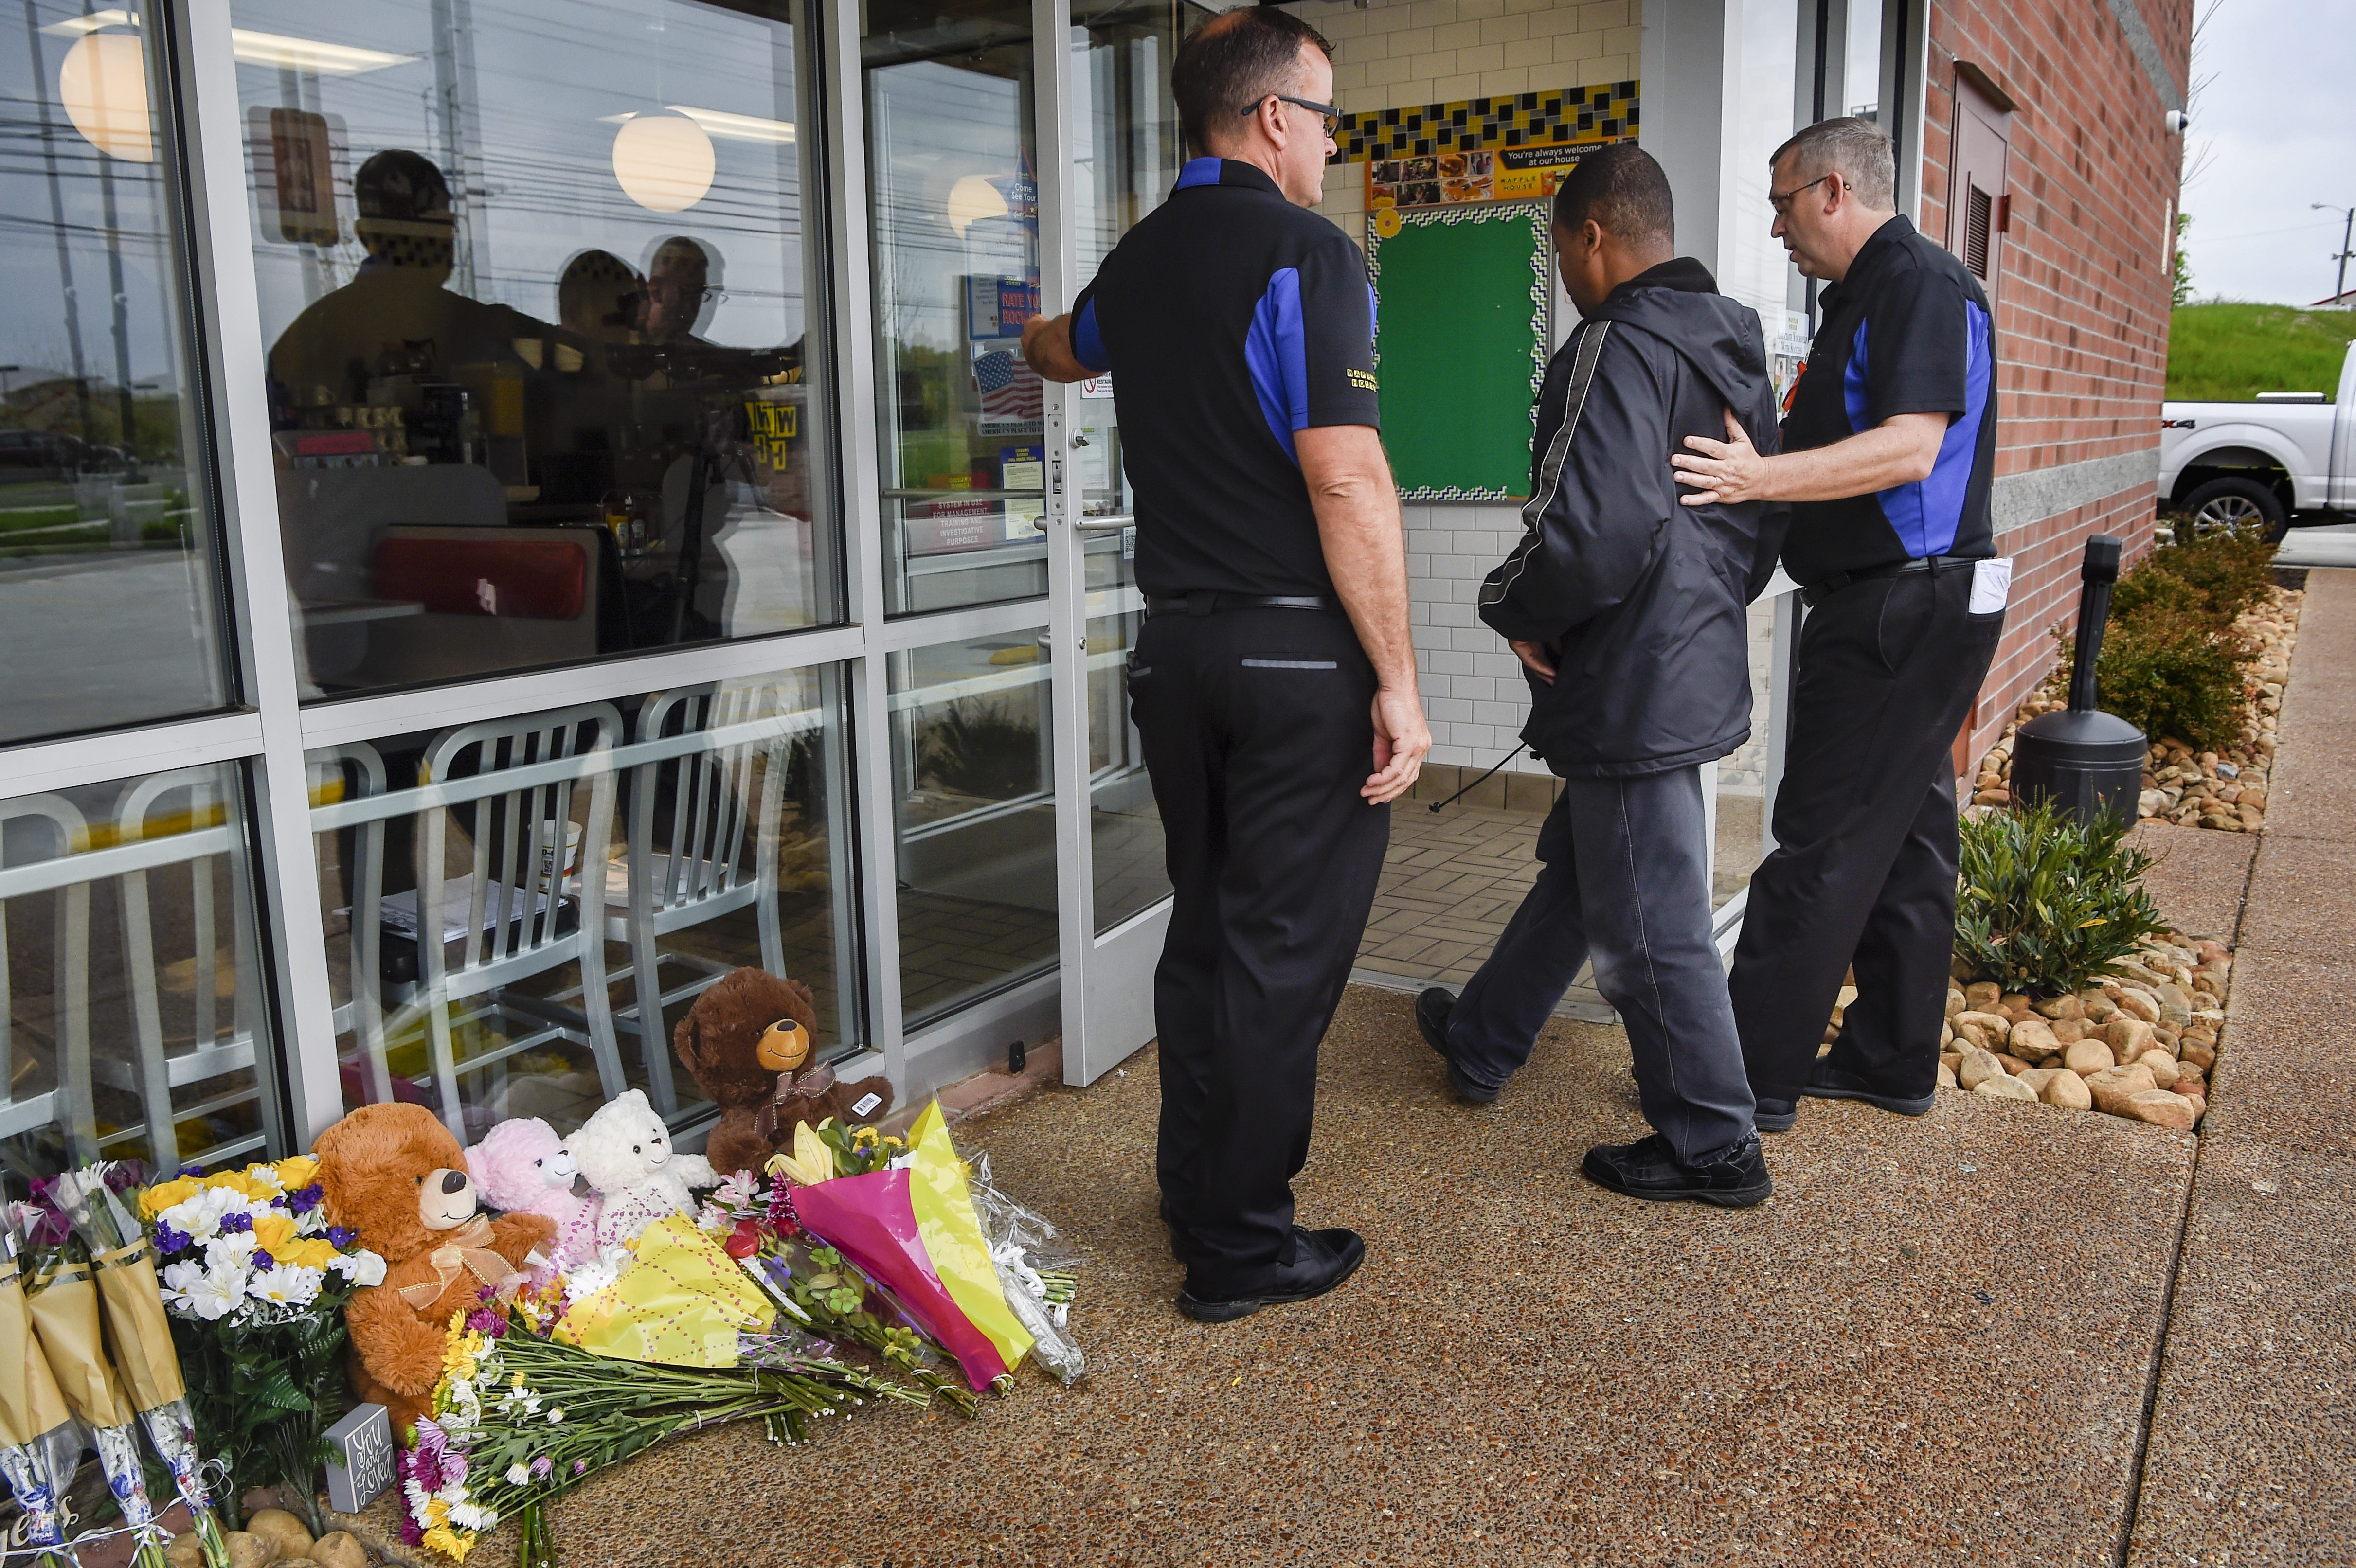 Jeff Camp and Ken Wright of Waffle House escort Ronald Page into the reopened restaurant three days after the deadly shooting.